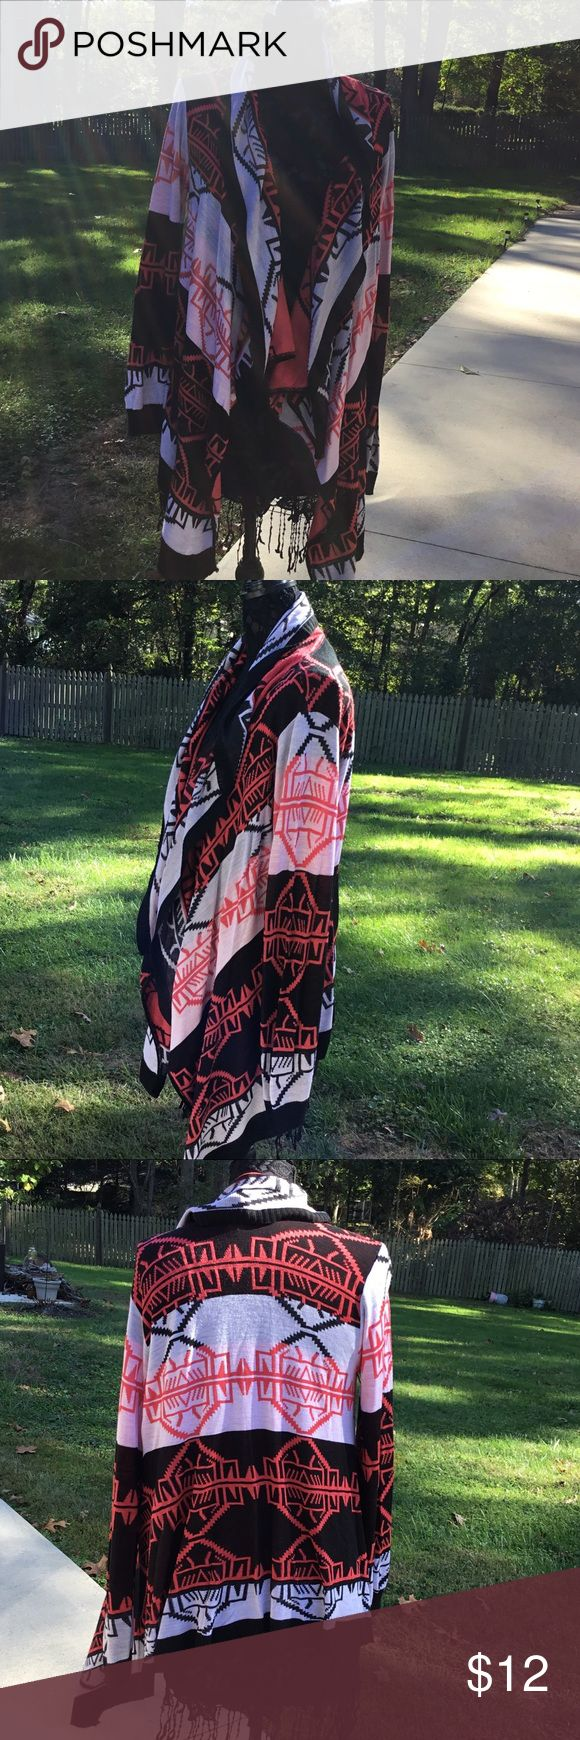 Say What ? Women's Aztec Tribal Print Cardigan Say What? Women's Aztec Tribal Print Size 3 X Open Front Cardigan in Excellent Condition Say What? Sweaters Cardigans